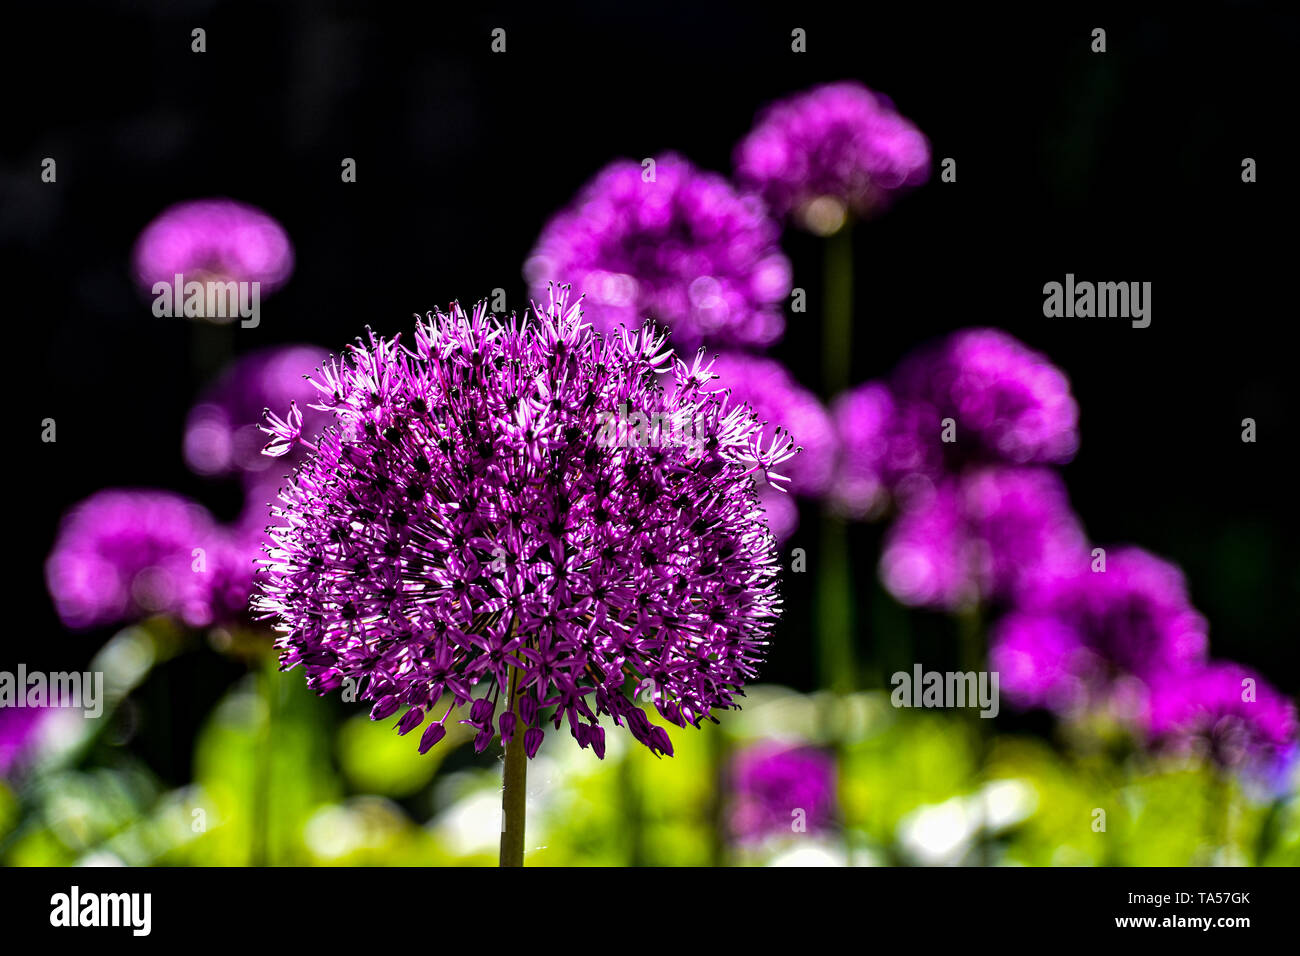 Allium flowers, cultivated, ornamental onion Stock Photo